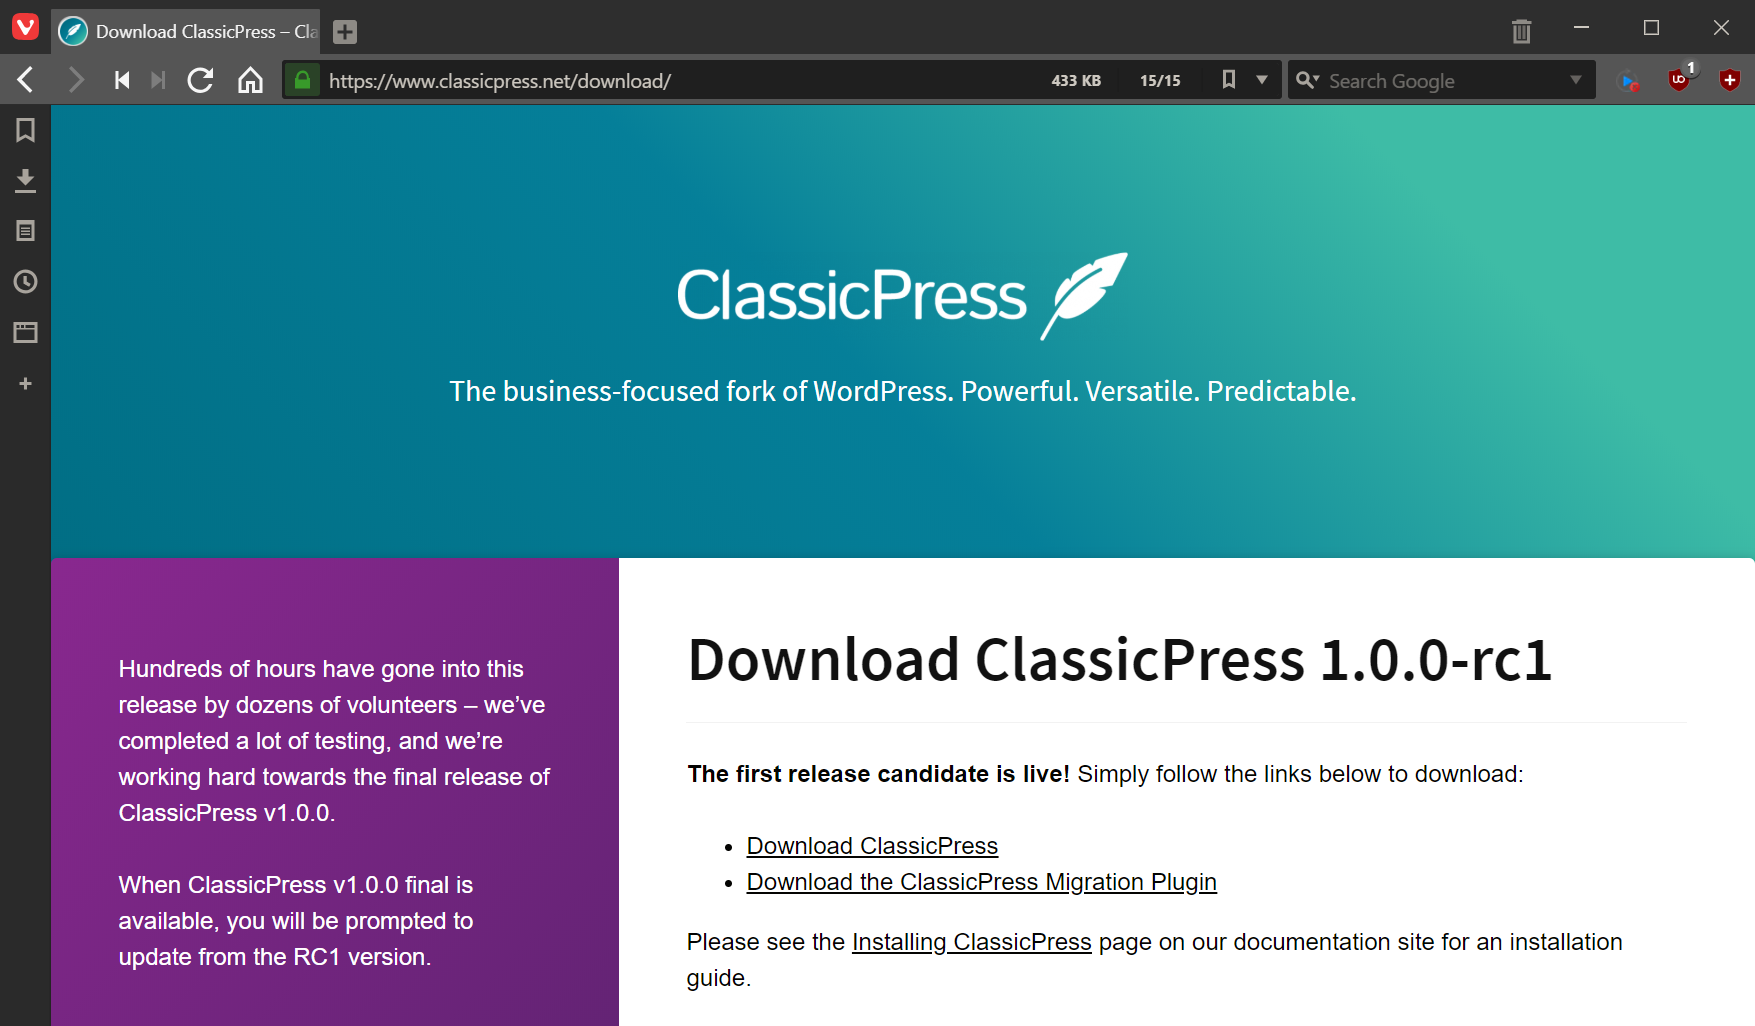 ClassicPress download page with link